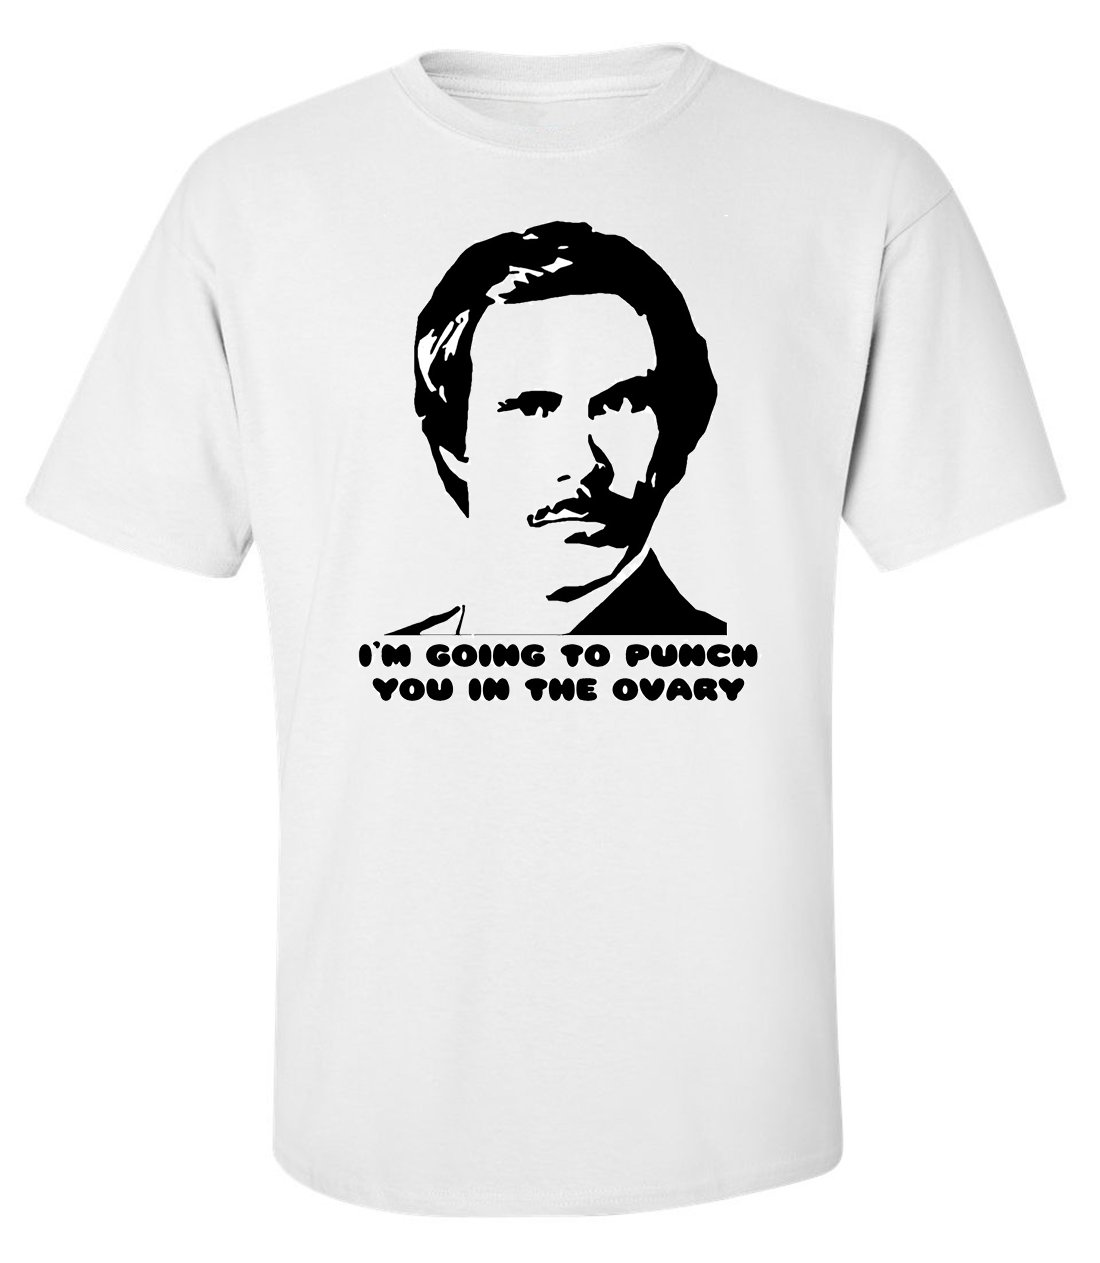 Anchorman stencil funny portrait slogan men printed white t-shirt size M